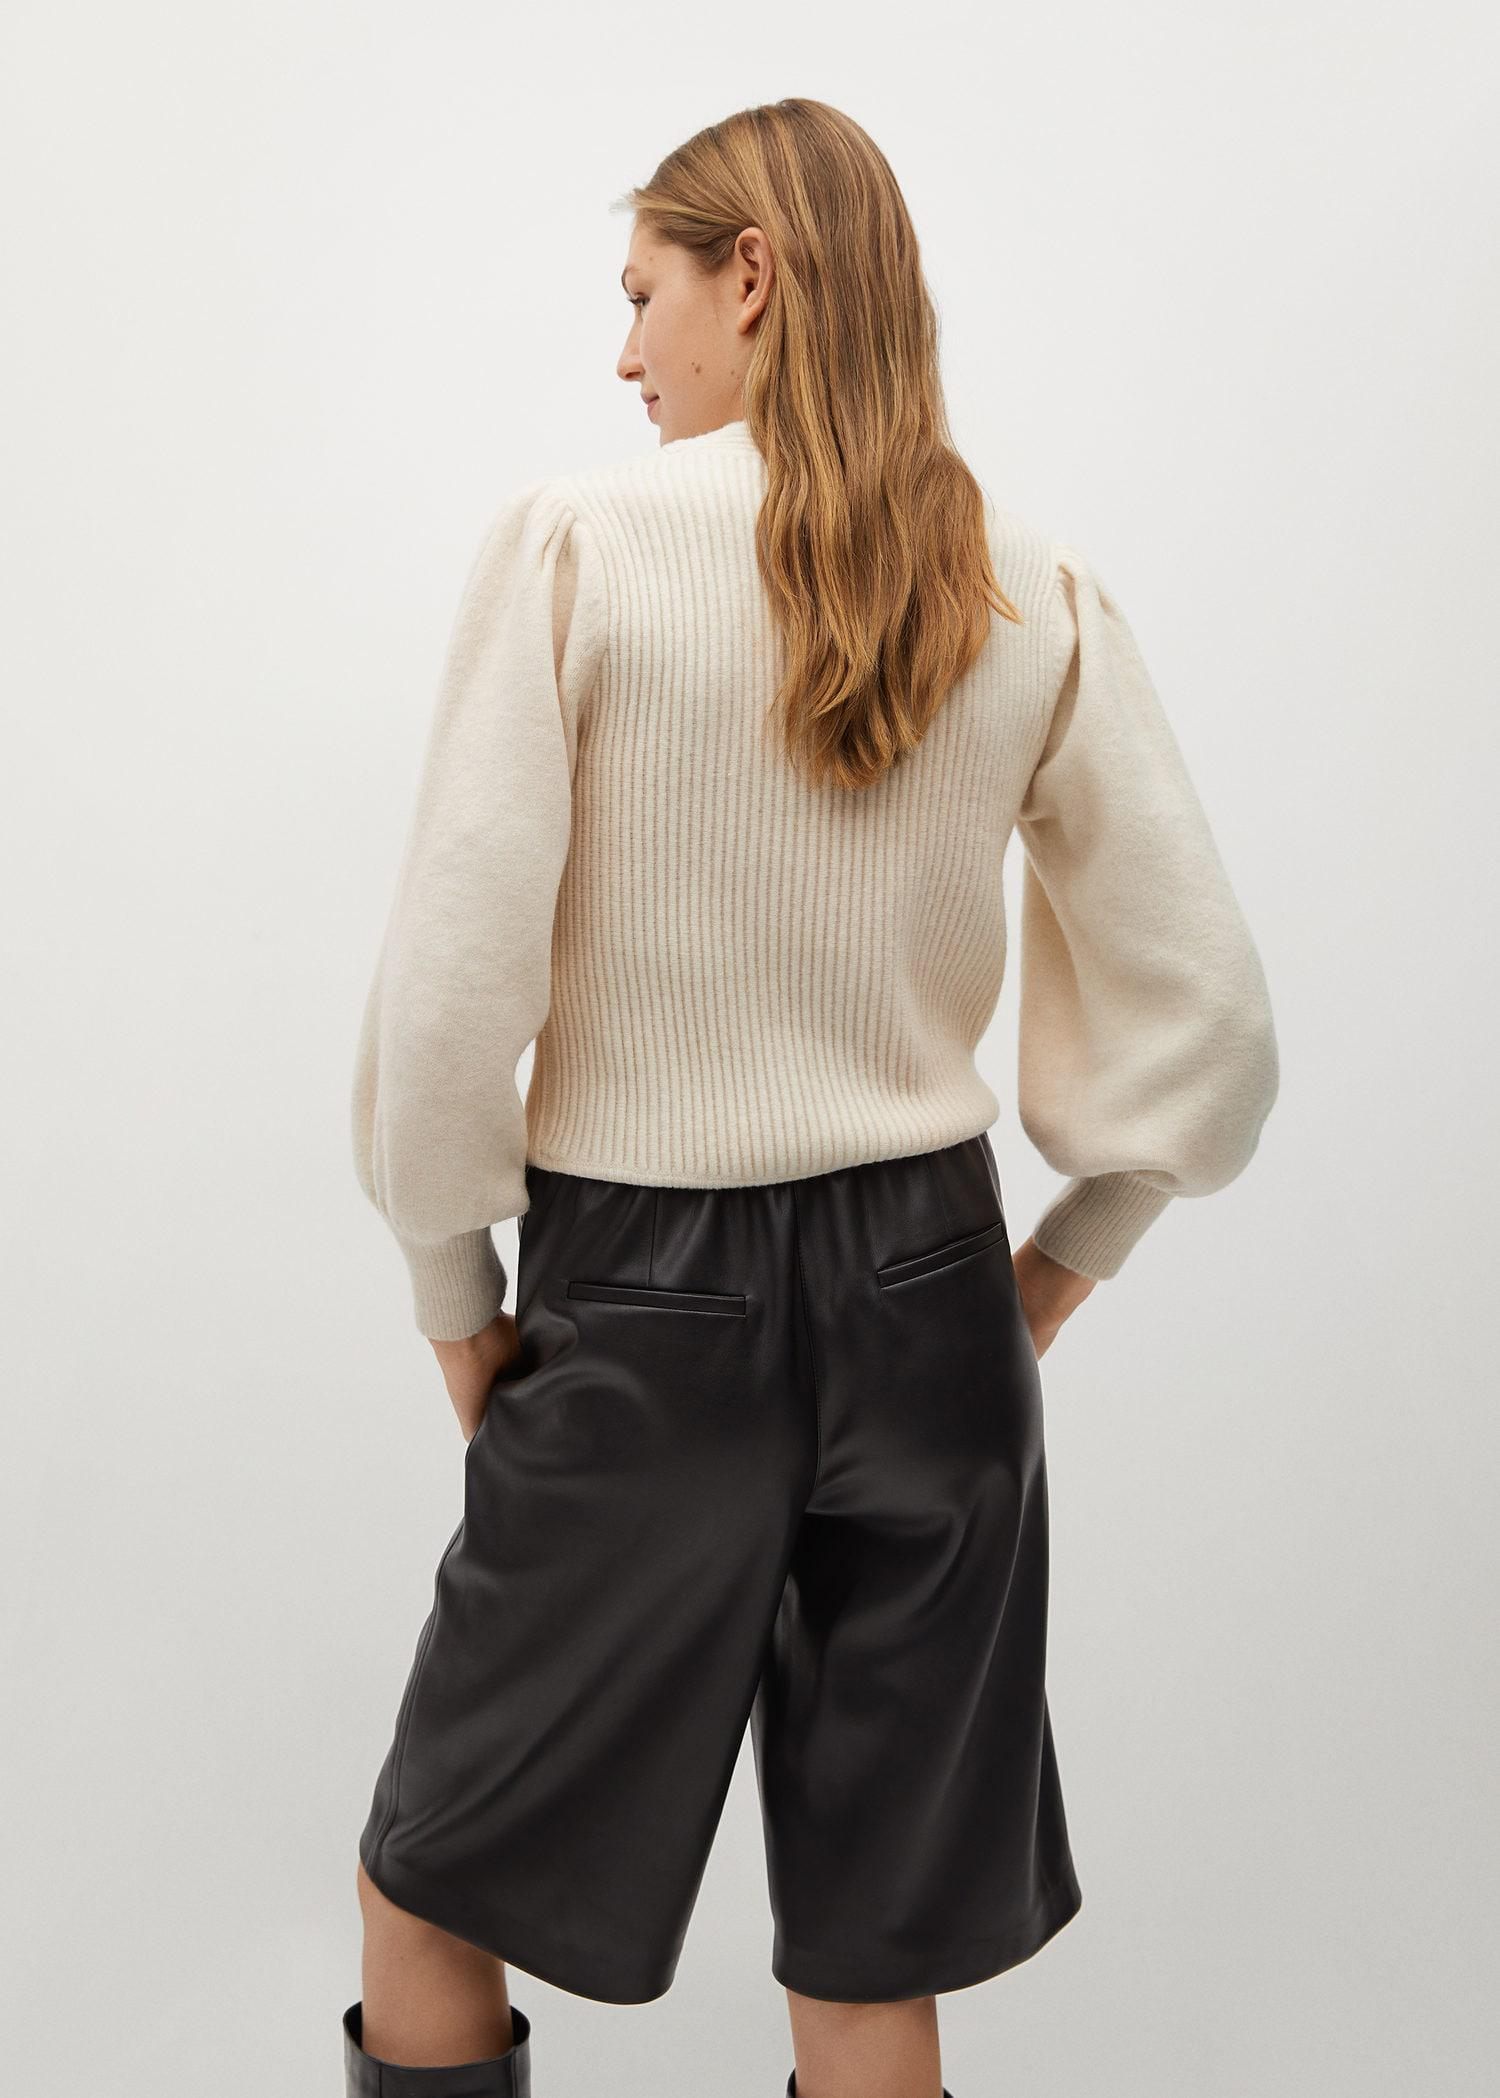 Sweater with puffed sleeves 2